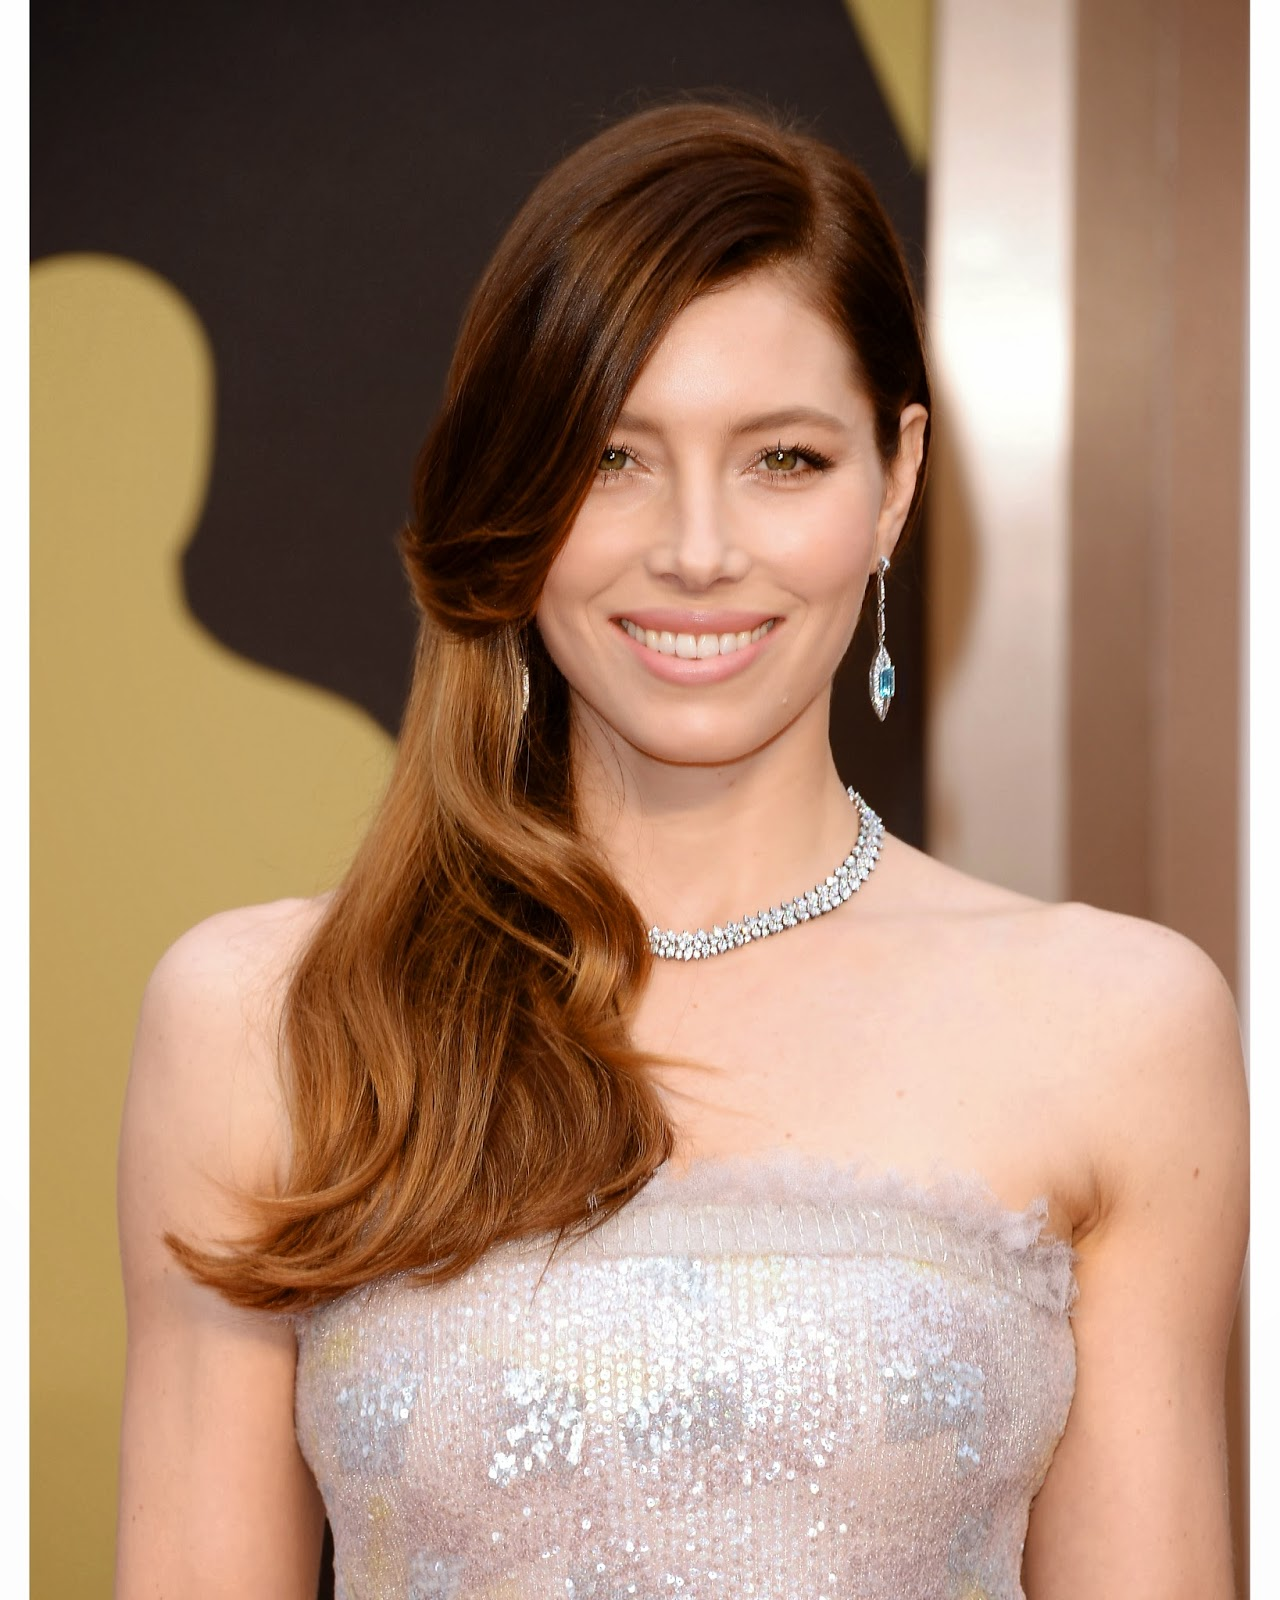 JESSICA BIEL AT THE 86TH ACADEMY AWARDS